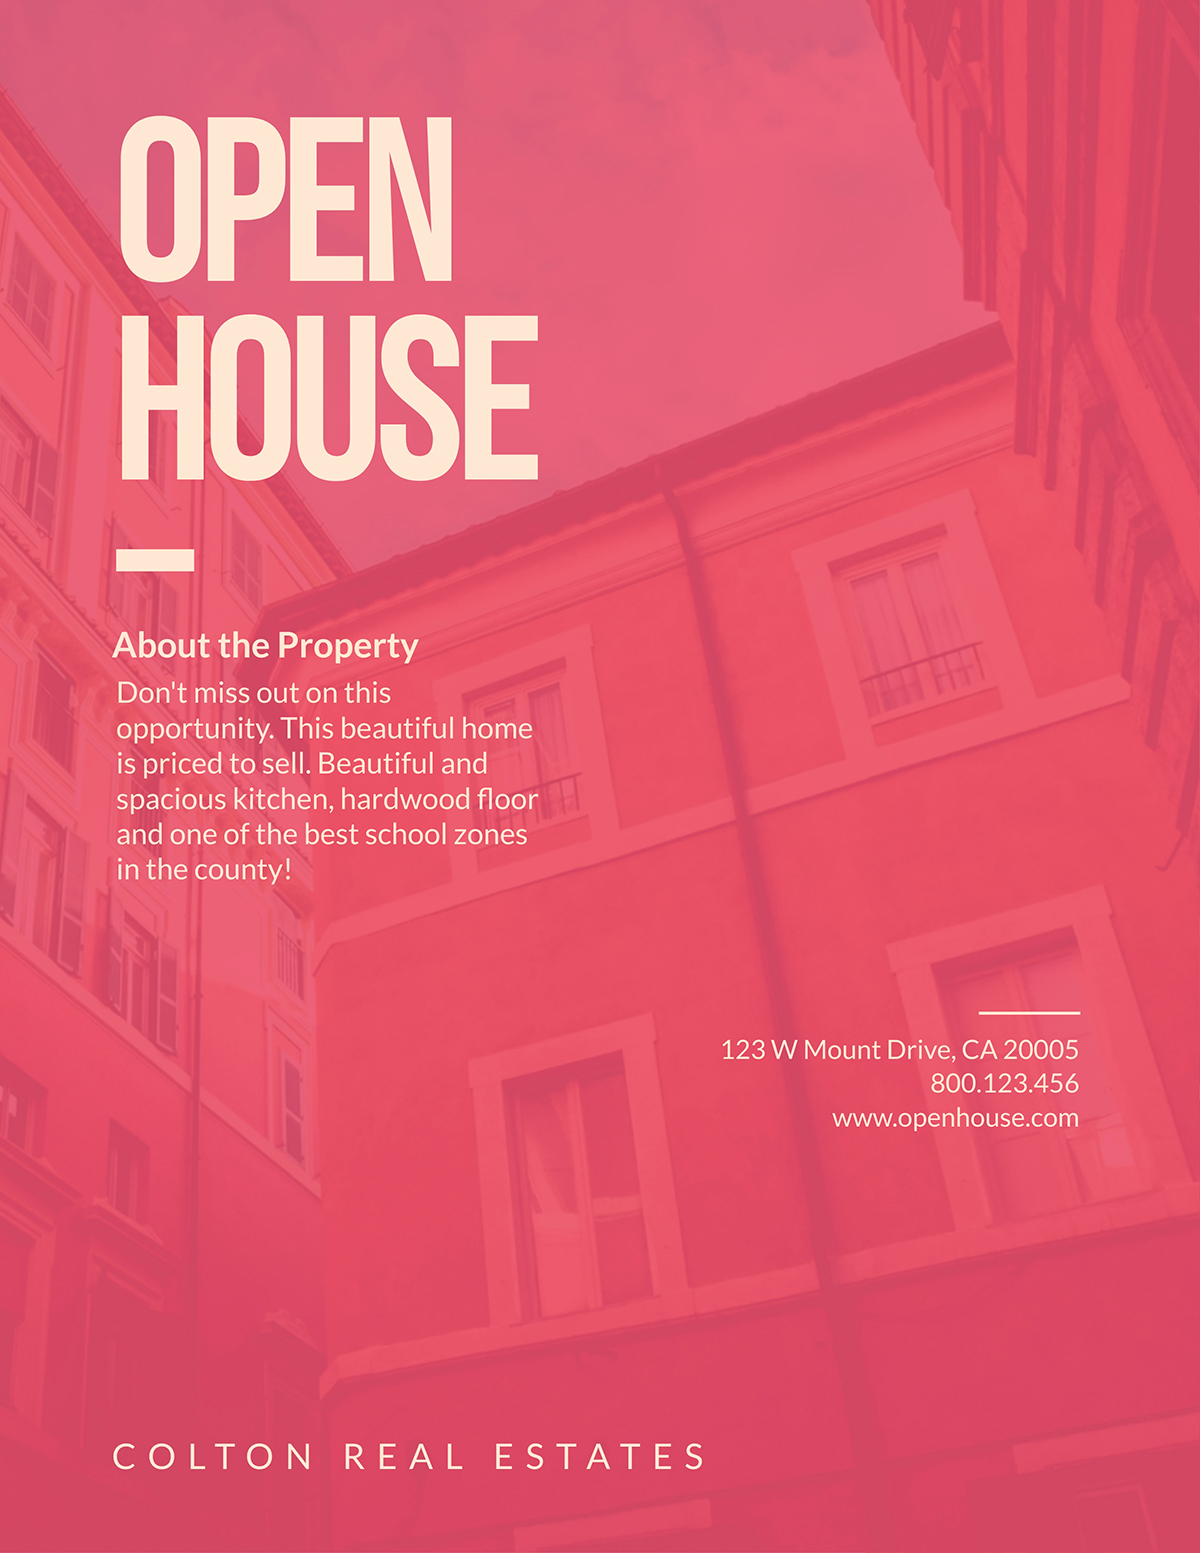 Open house flyer template available in Visme.